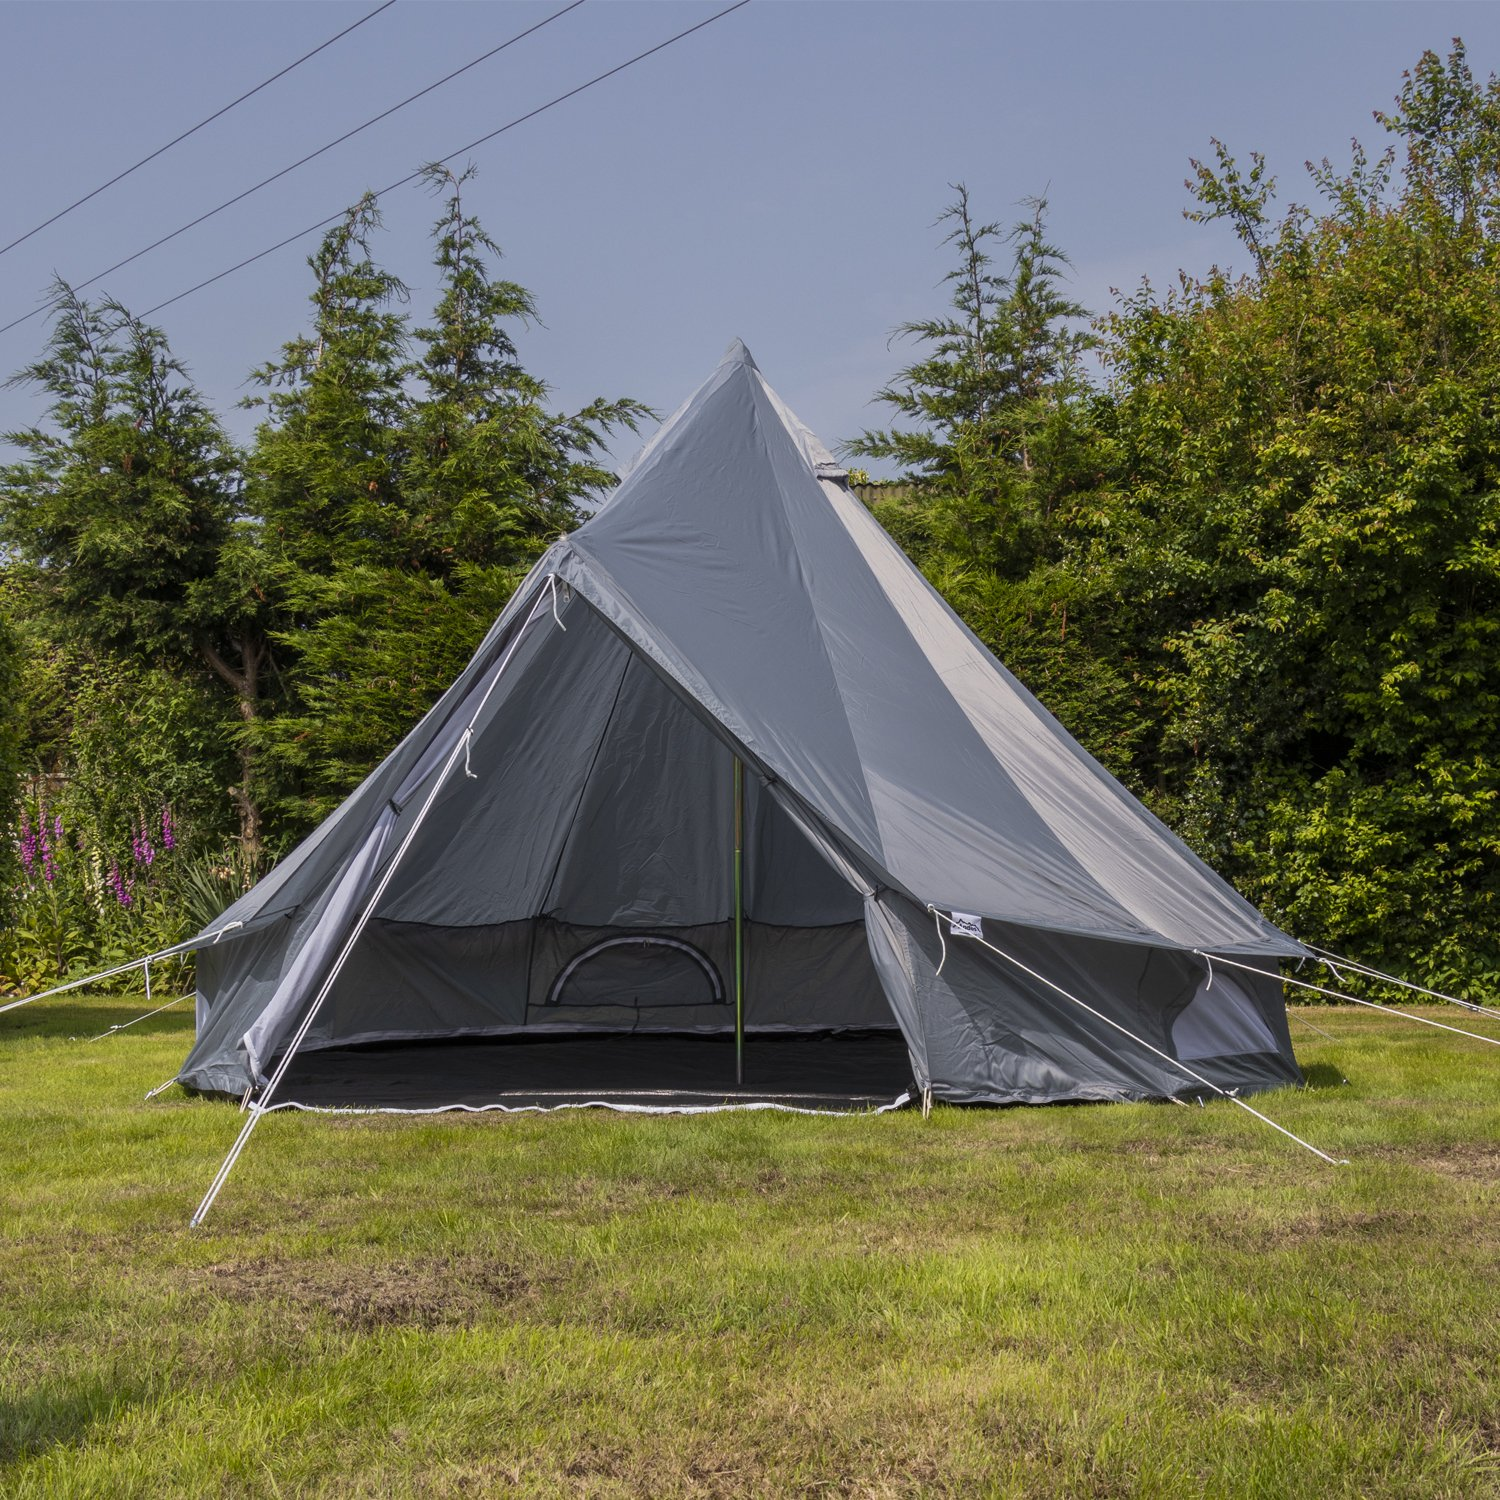 Festival Luxury Teepee Camping Glamping Andes 5m Oxford Bell Tent With Heavy Duty Zipped In Groundsheet